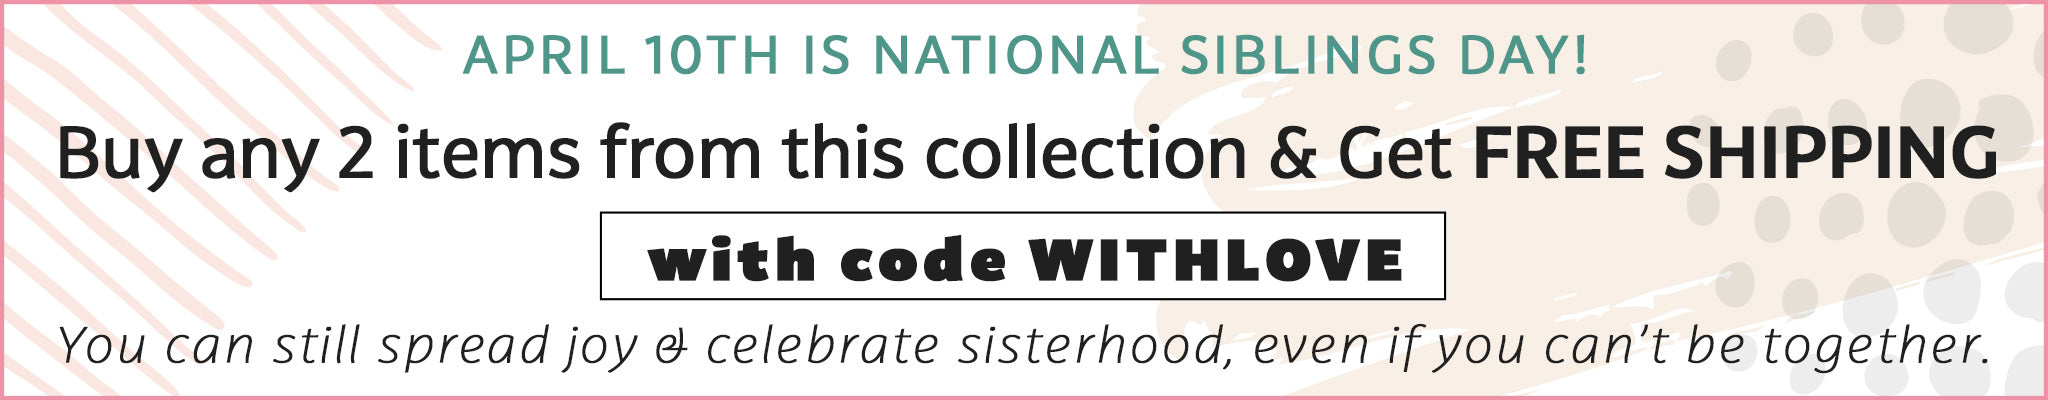 Buy 2 Items from Sister Collection, Get Free Shipping | WITHLOVE